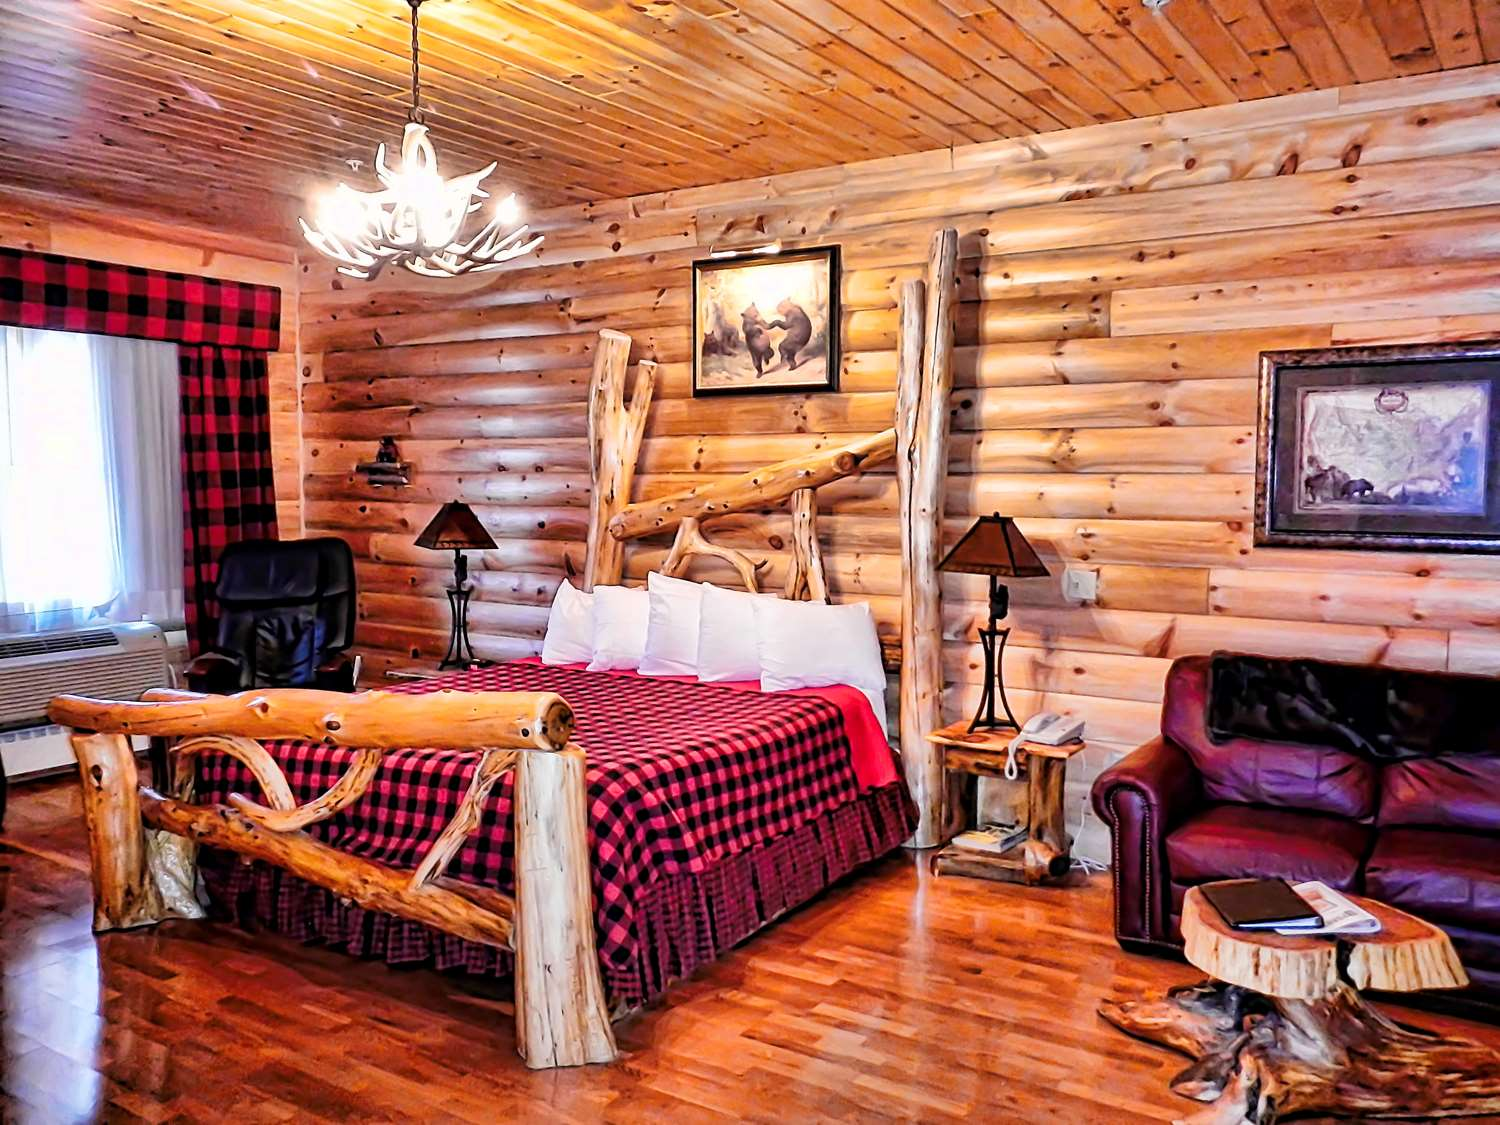 Wilderness Lodge King Bed Air Jet Jacuzzi Electric Mage Chair And More